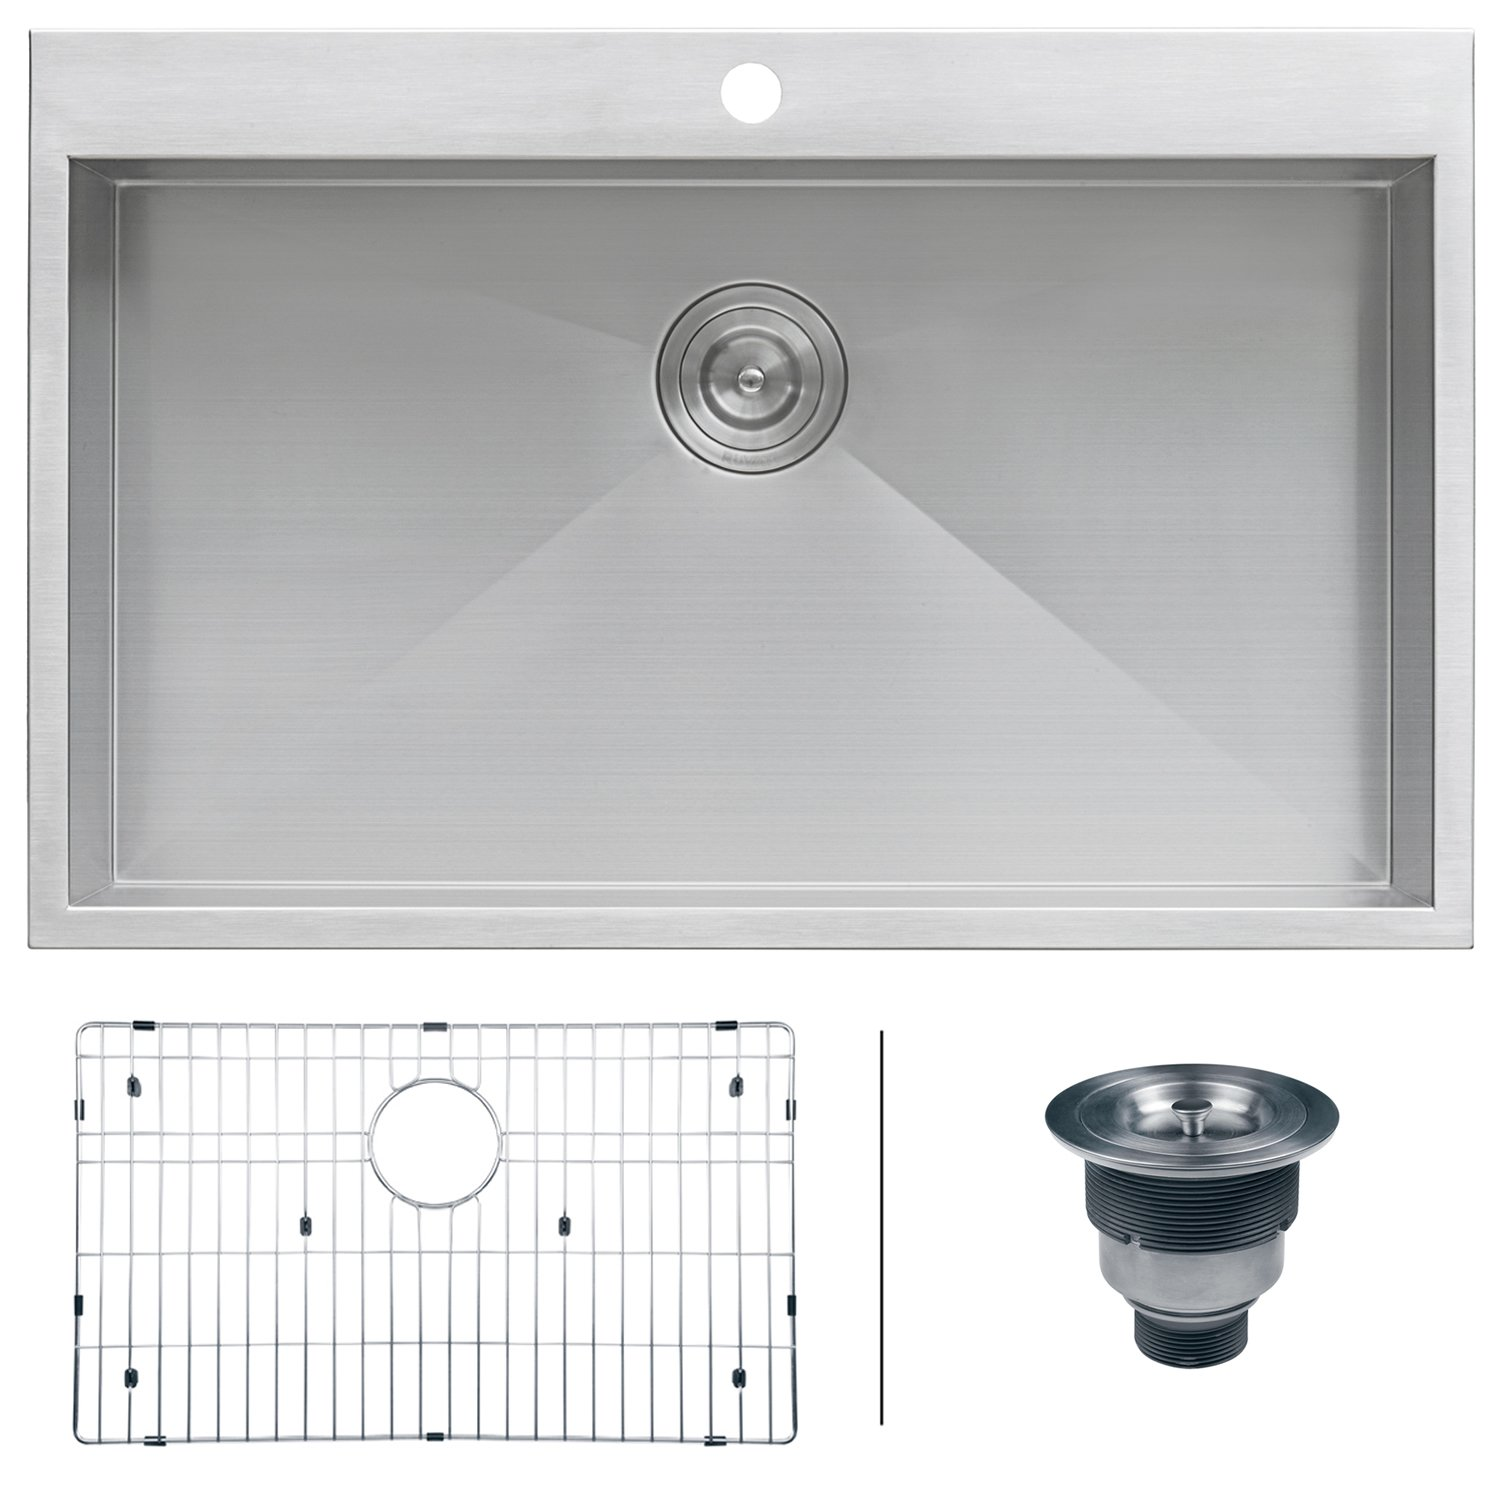 "Ruvati RVH8000 Drop-in Overmount 33"" x 21"" Kitchen Sink 16 Gauge Stainless Steel Single Bowl"